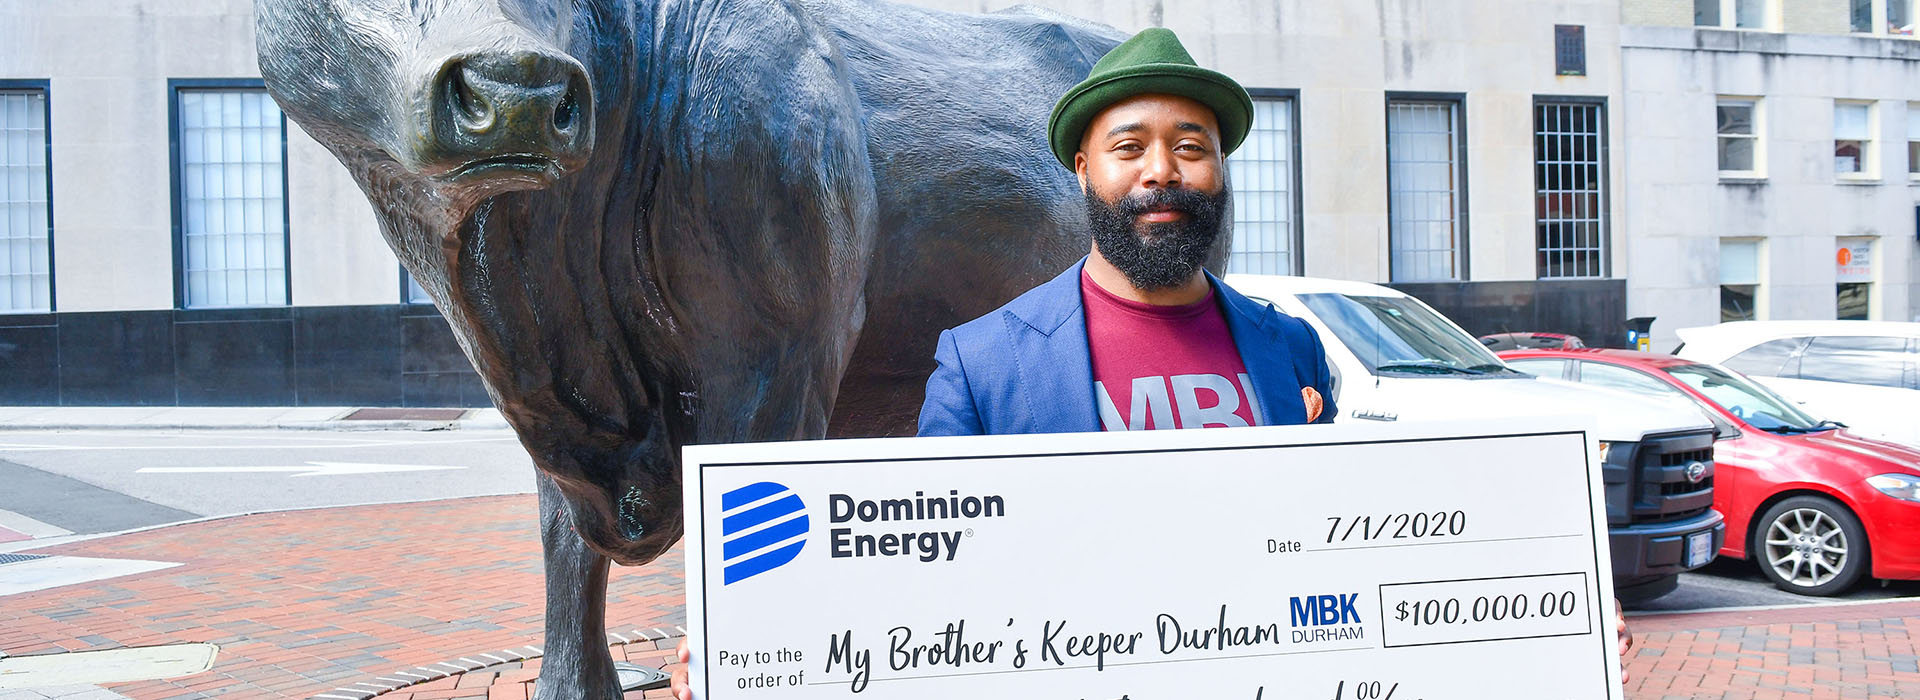 MBK Durham's Edmund Lewis stands in front of Bull in downtown with $100,000 check